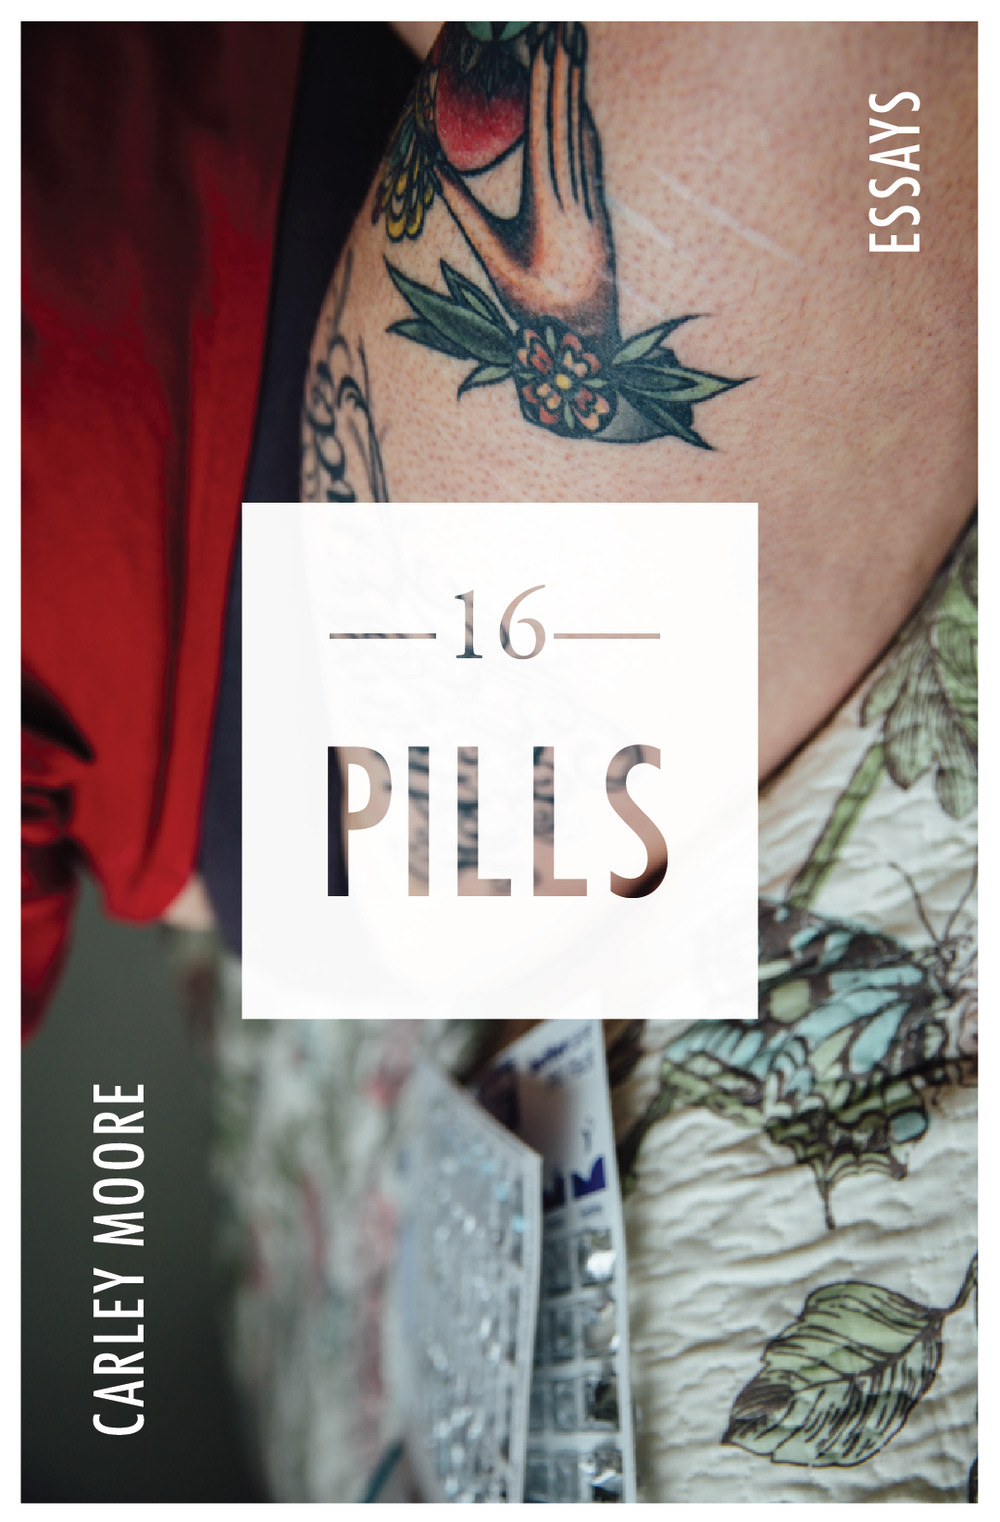 16 Pills - my debut essay collection from Tinderbox Editions